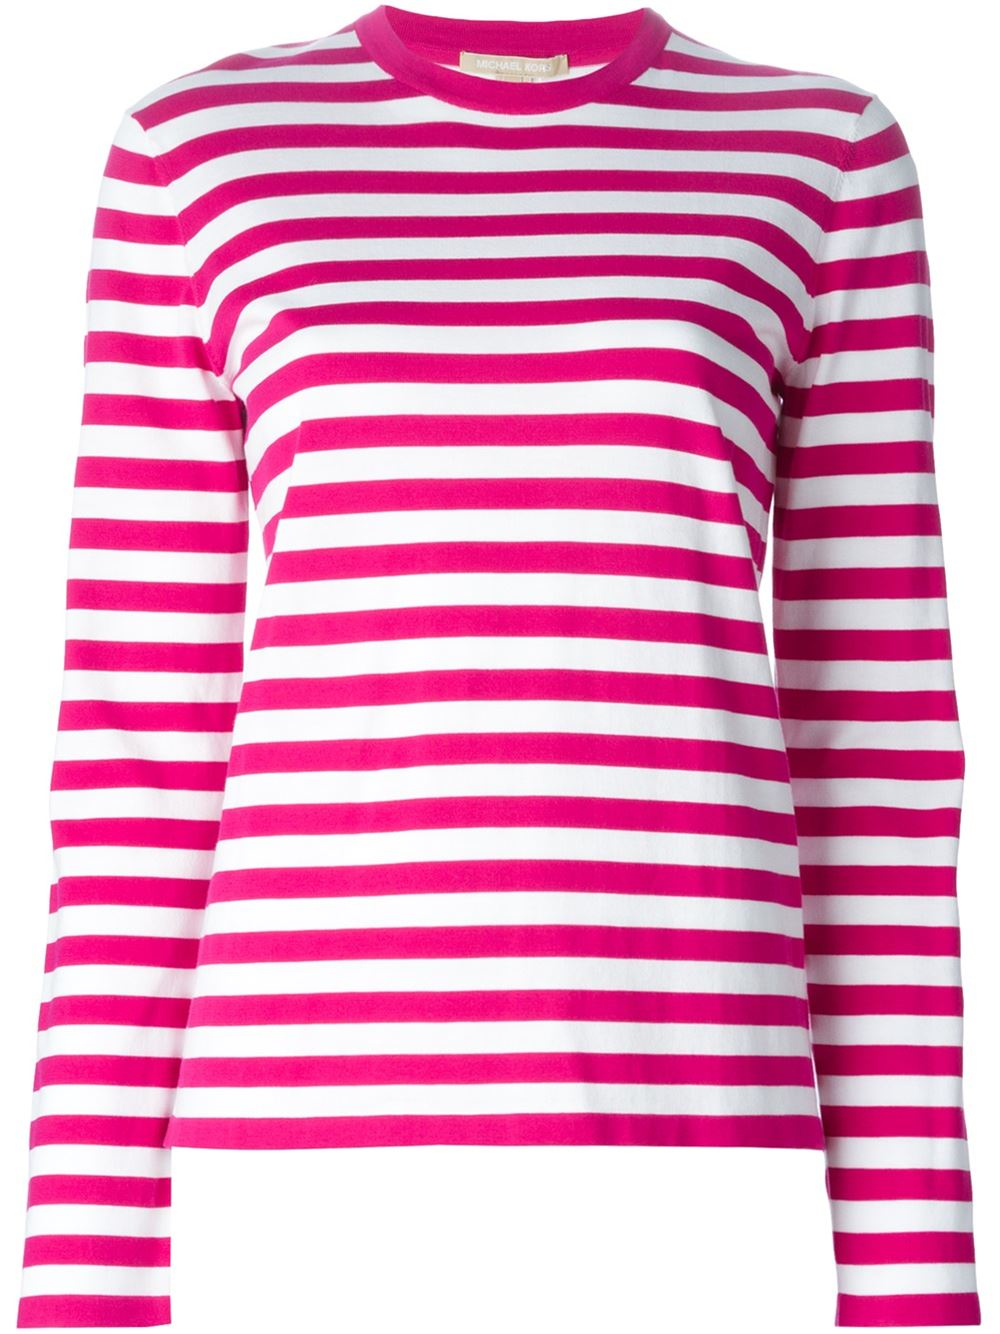 Michael kors striped t shirt in pink pink purple lyst for Purple and black striped t shirt